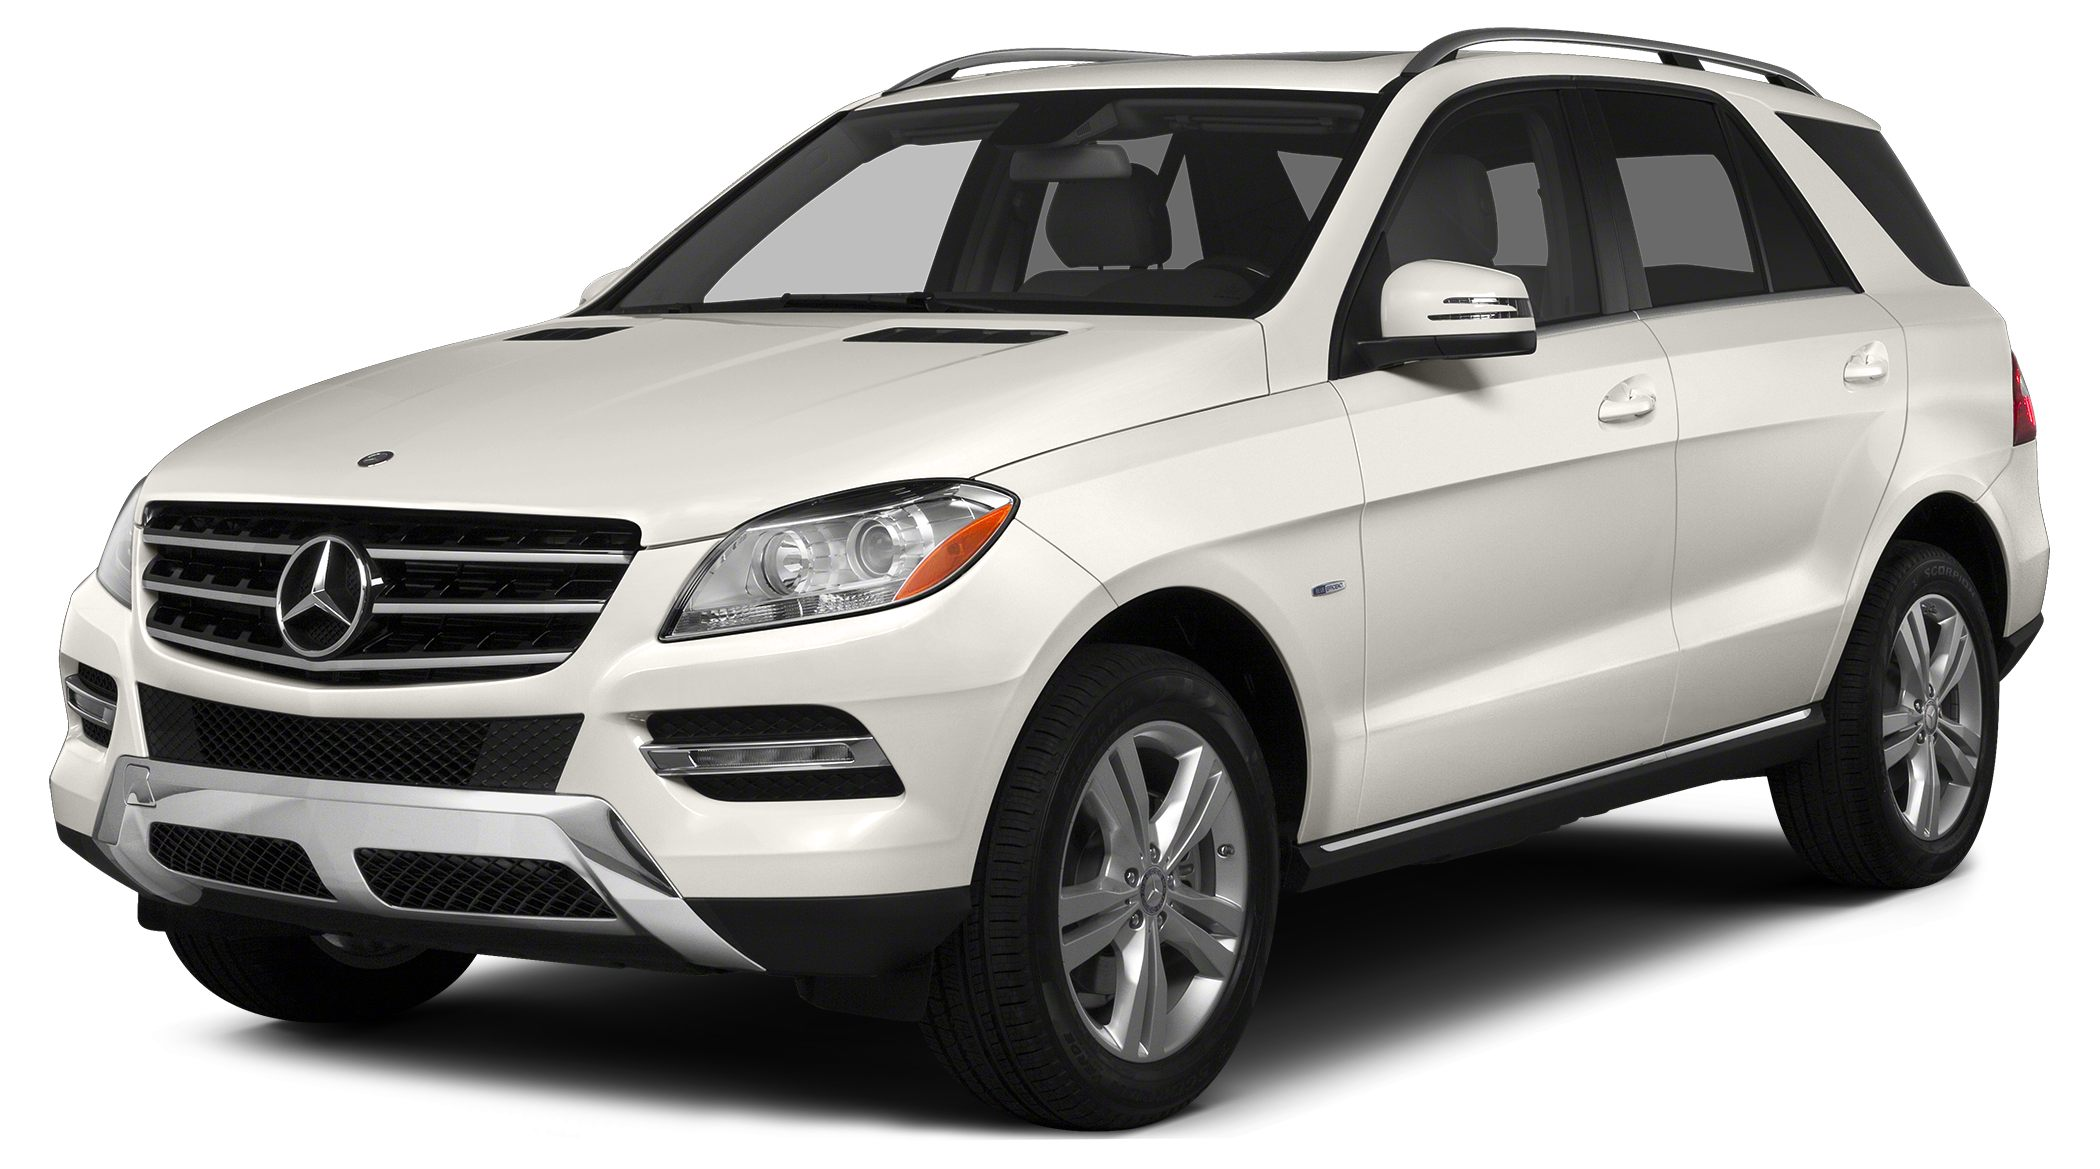 2013 MERCEDES M-Class ML350 4MATIC CERTIFIED PRE-OWNED CARFAX CERTIFIED 2013 MERCEDES ML350